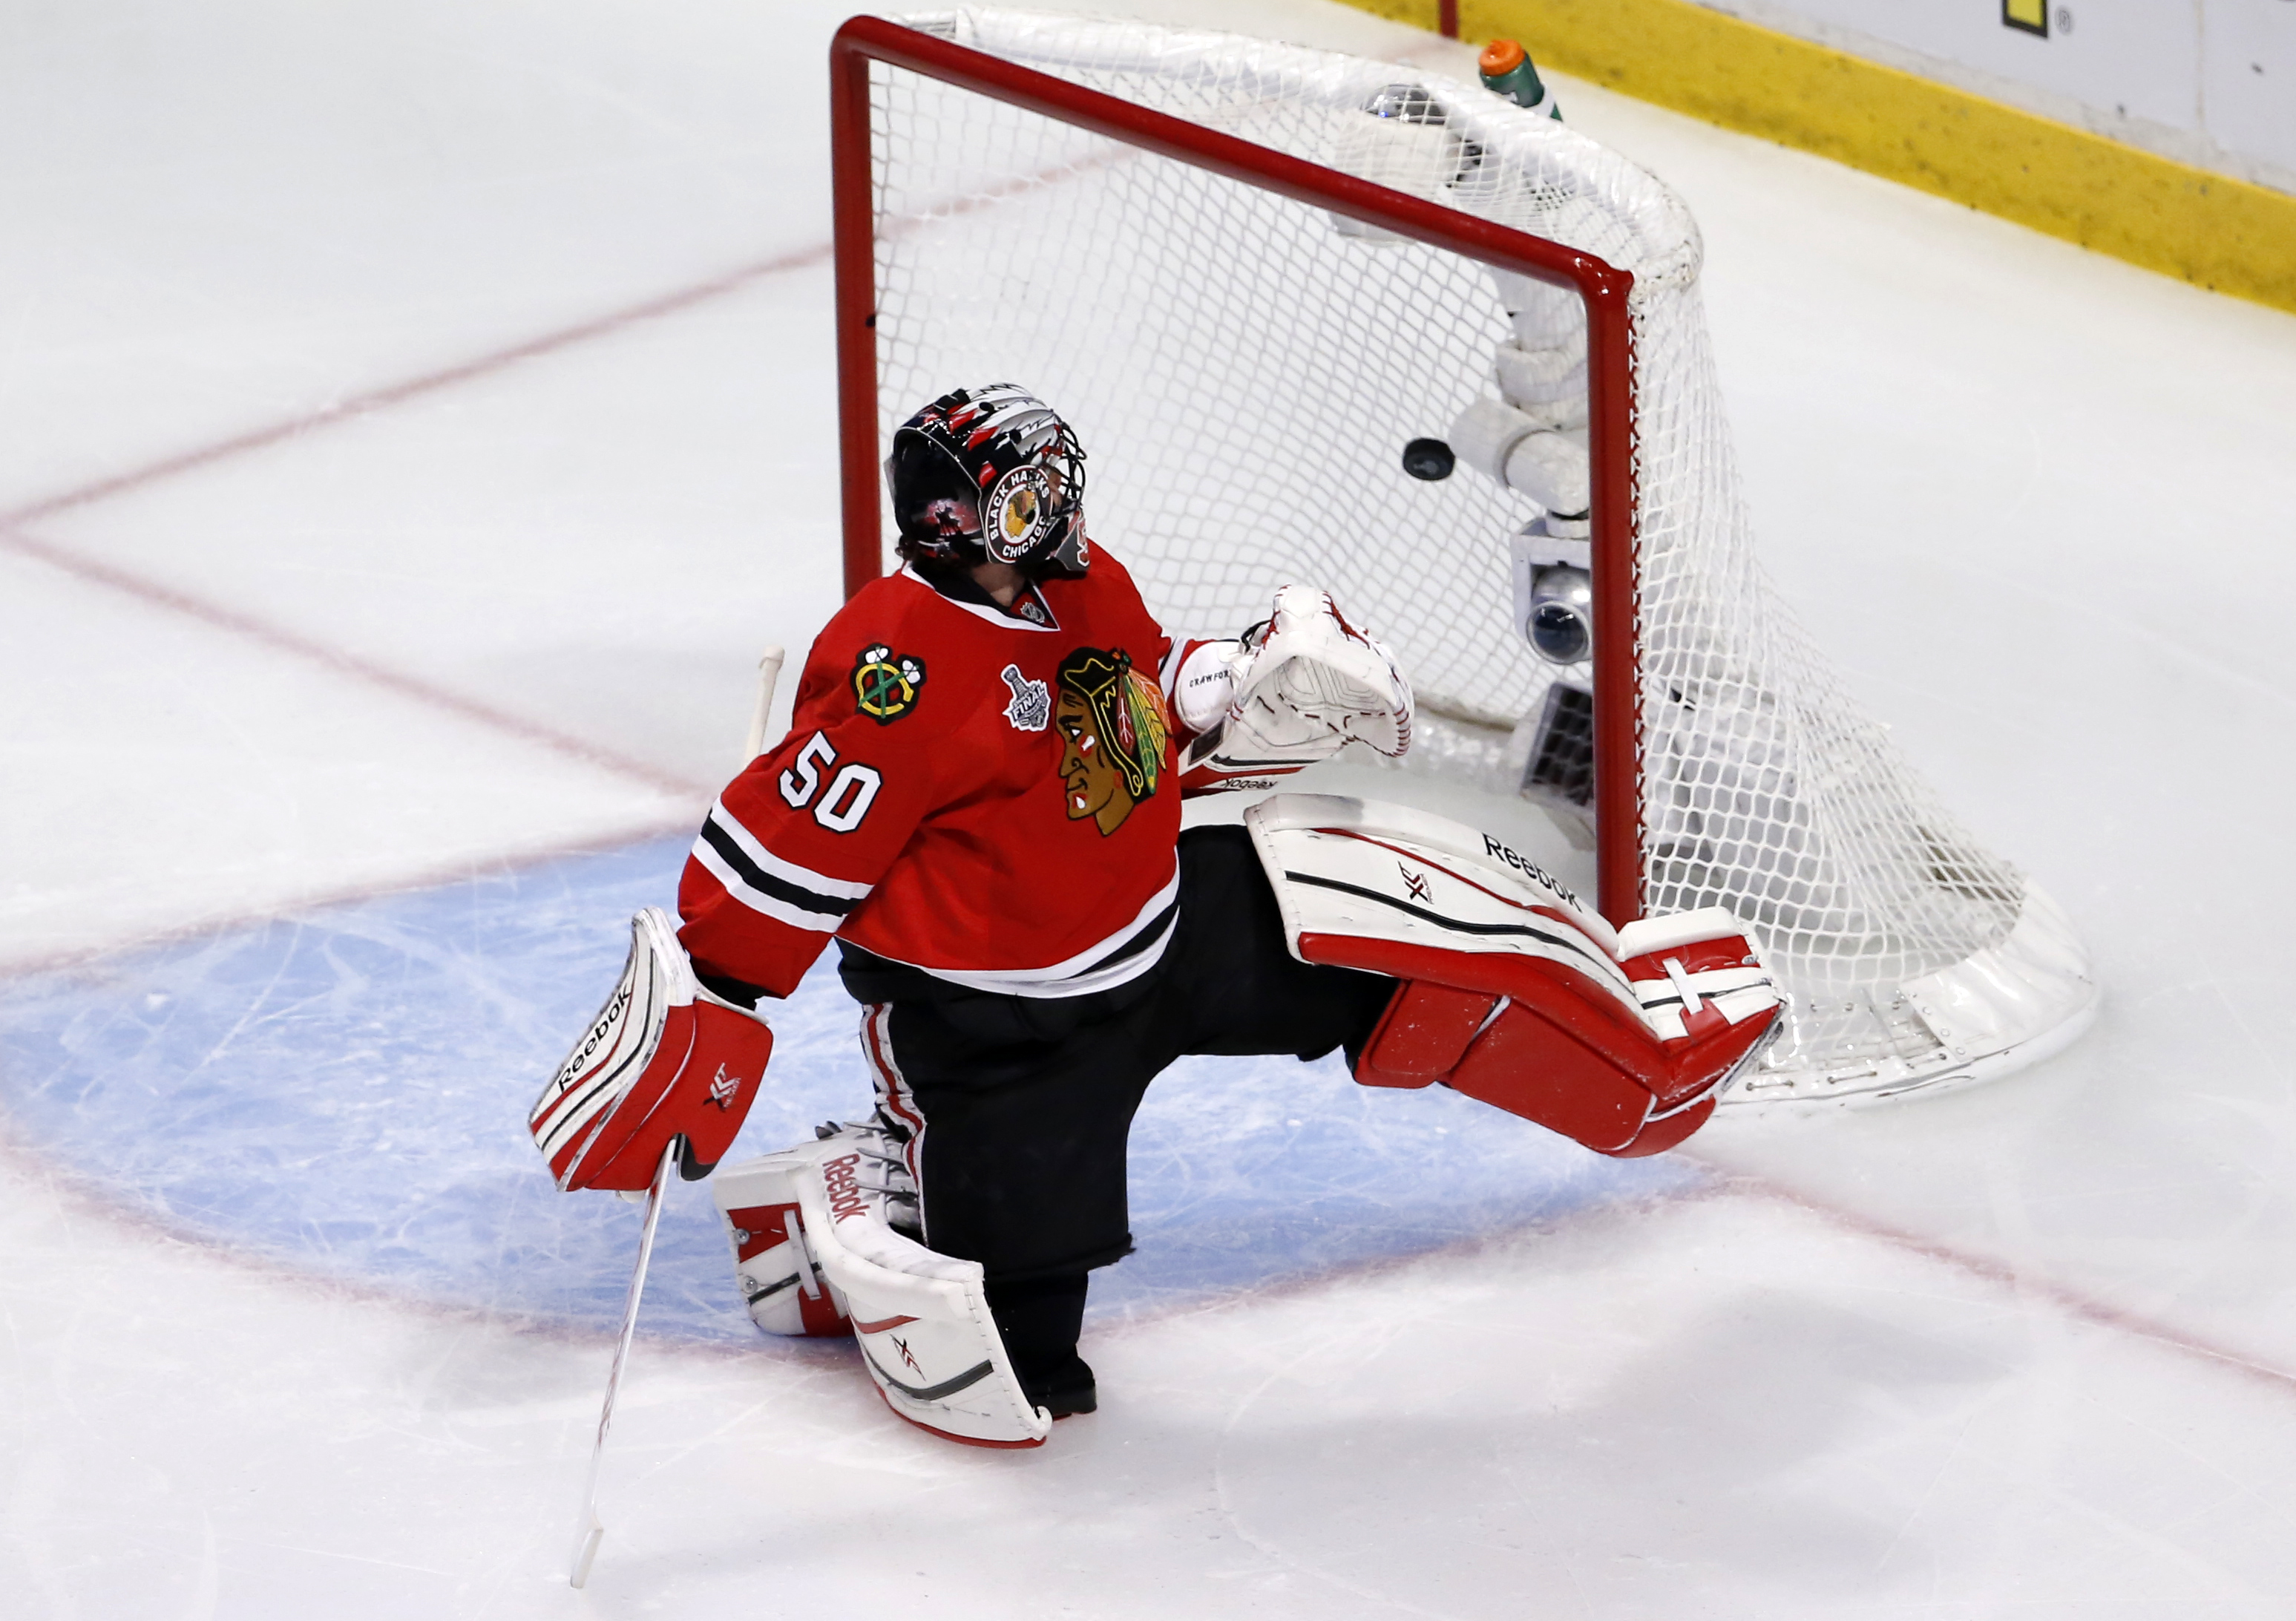 A shot by Tampa Bay Lightning's Ryan Callahan slips past Chicago Blackhawks goalie Corey Crawford for a goal during the first period in Game 3 of the NHL hockey Stanley Cup Final on Monday, June 8, 2015, in Chicago. (AP Photo/Charles Rex Arbogast)